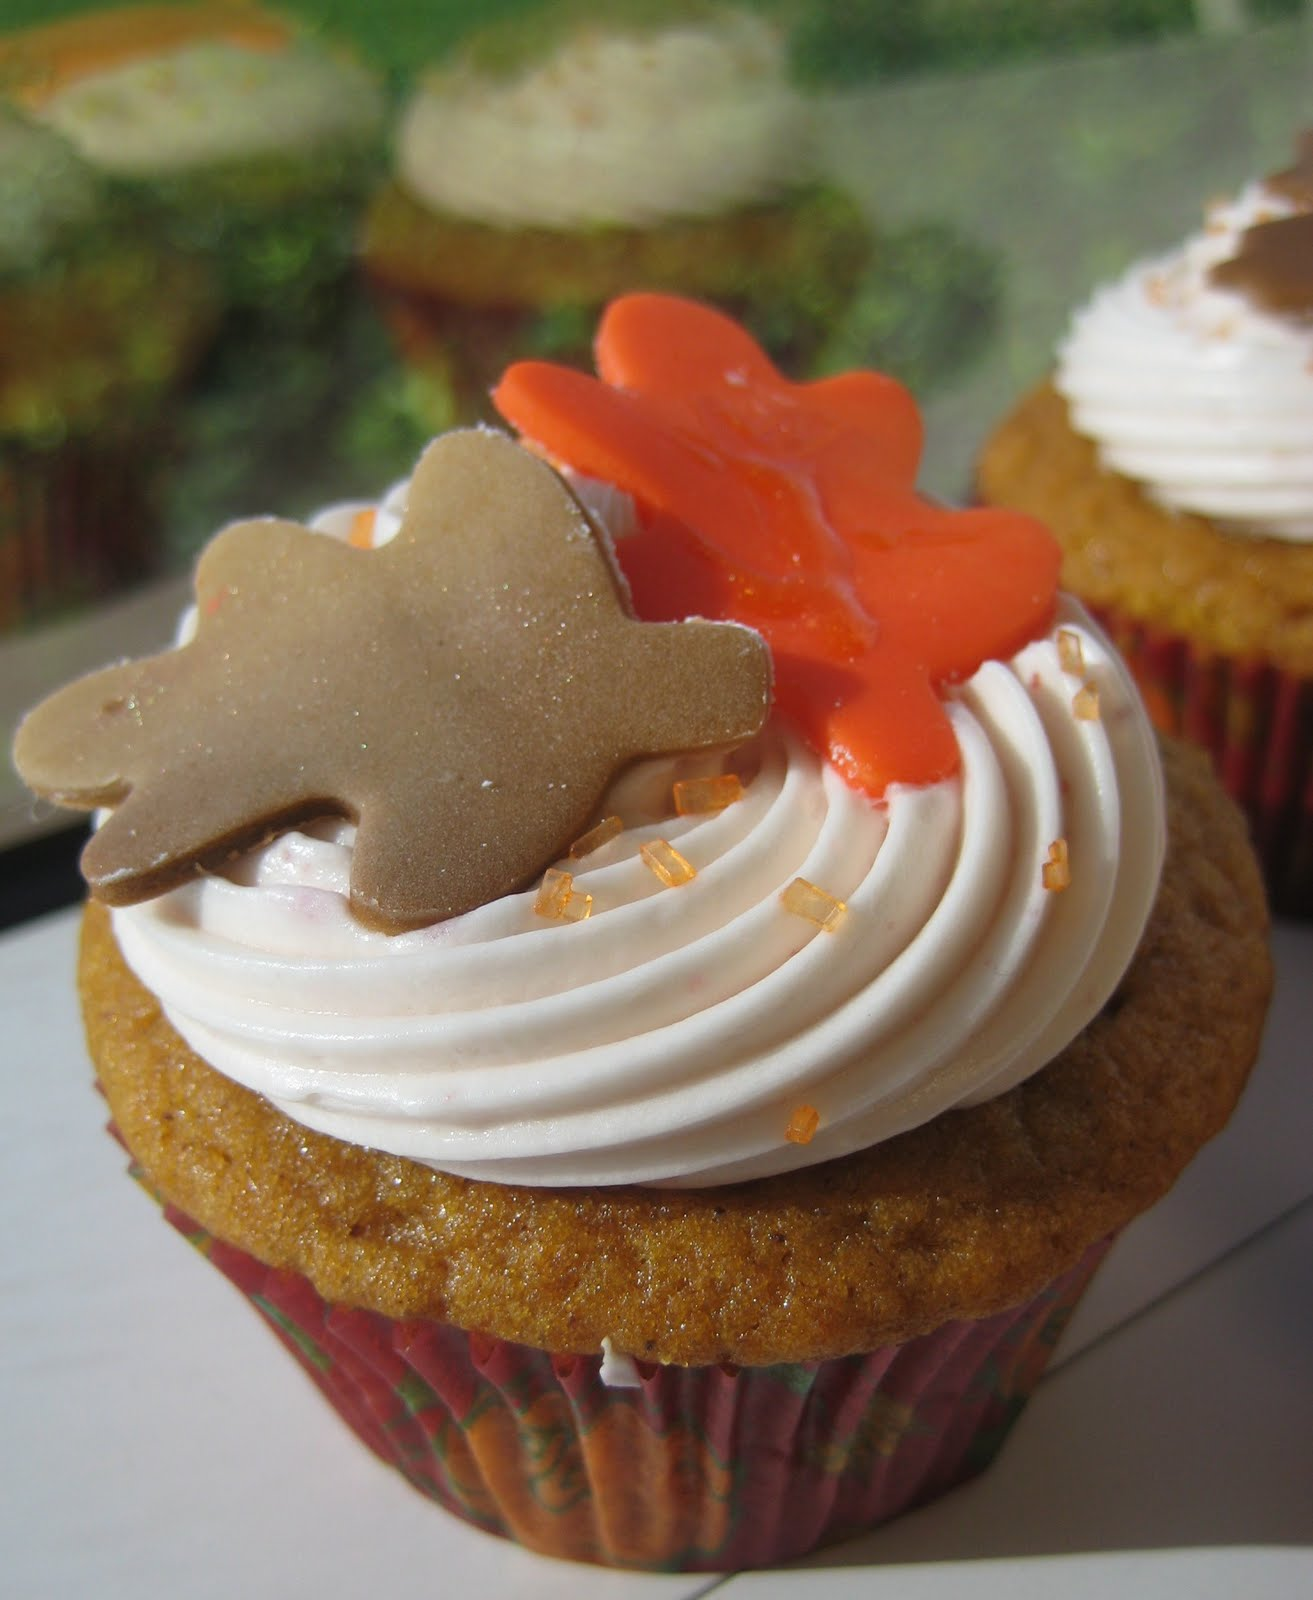 Ideas For Decorating Cupcakes: Decoration Ideas For Thanksgiving Cupcakes